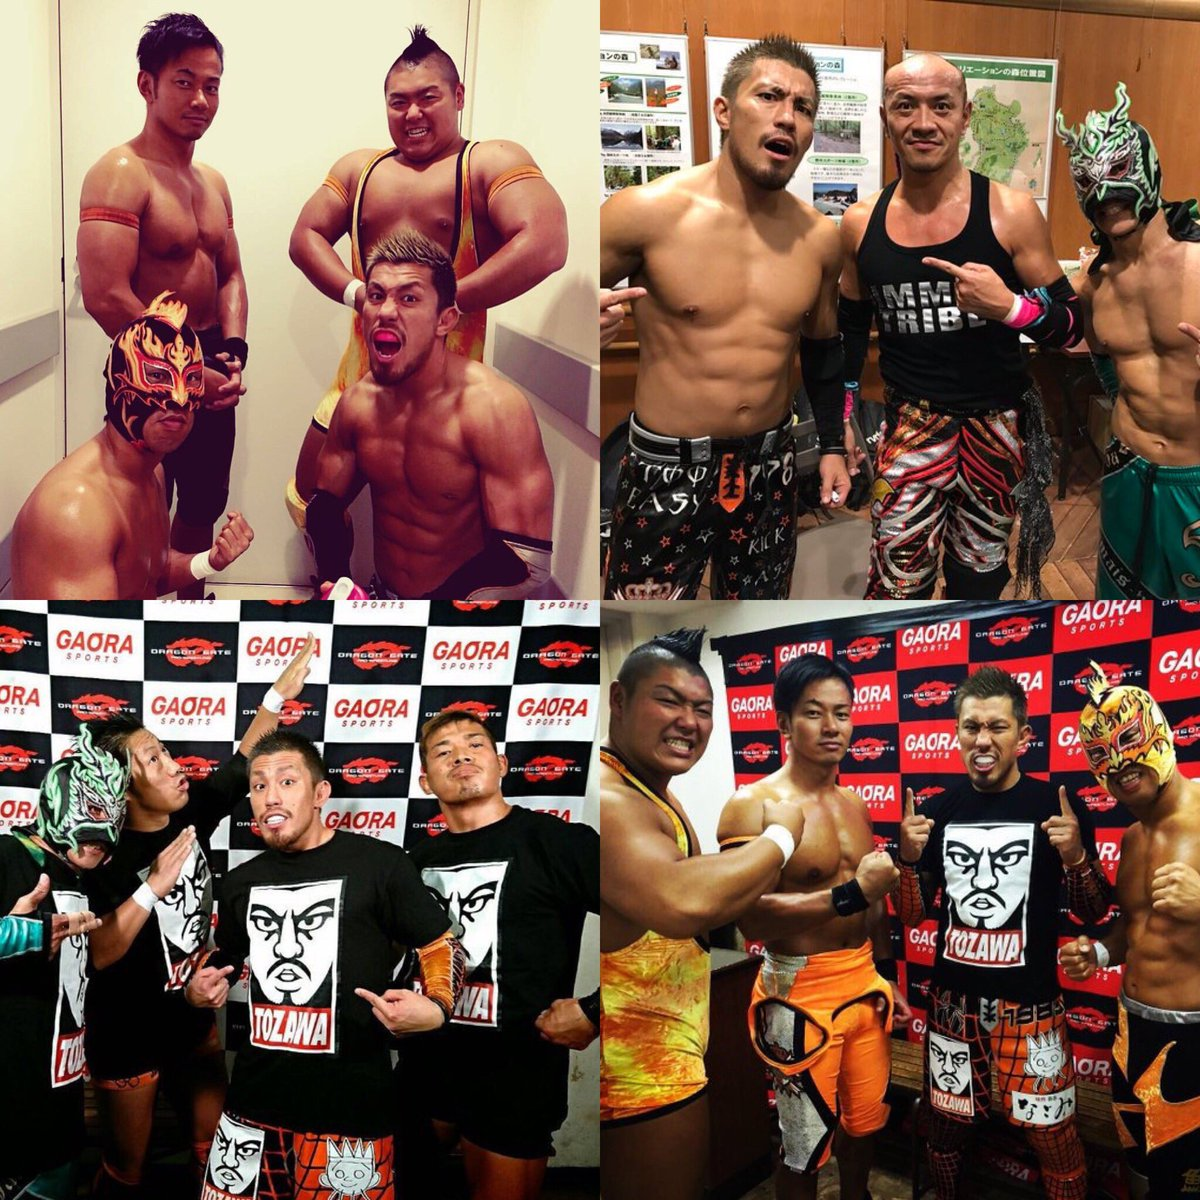 @TozawaAkira's photo on dragon gate